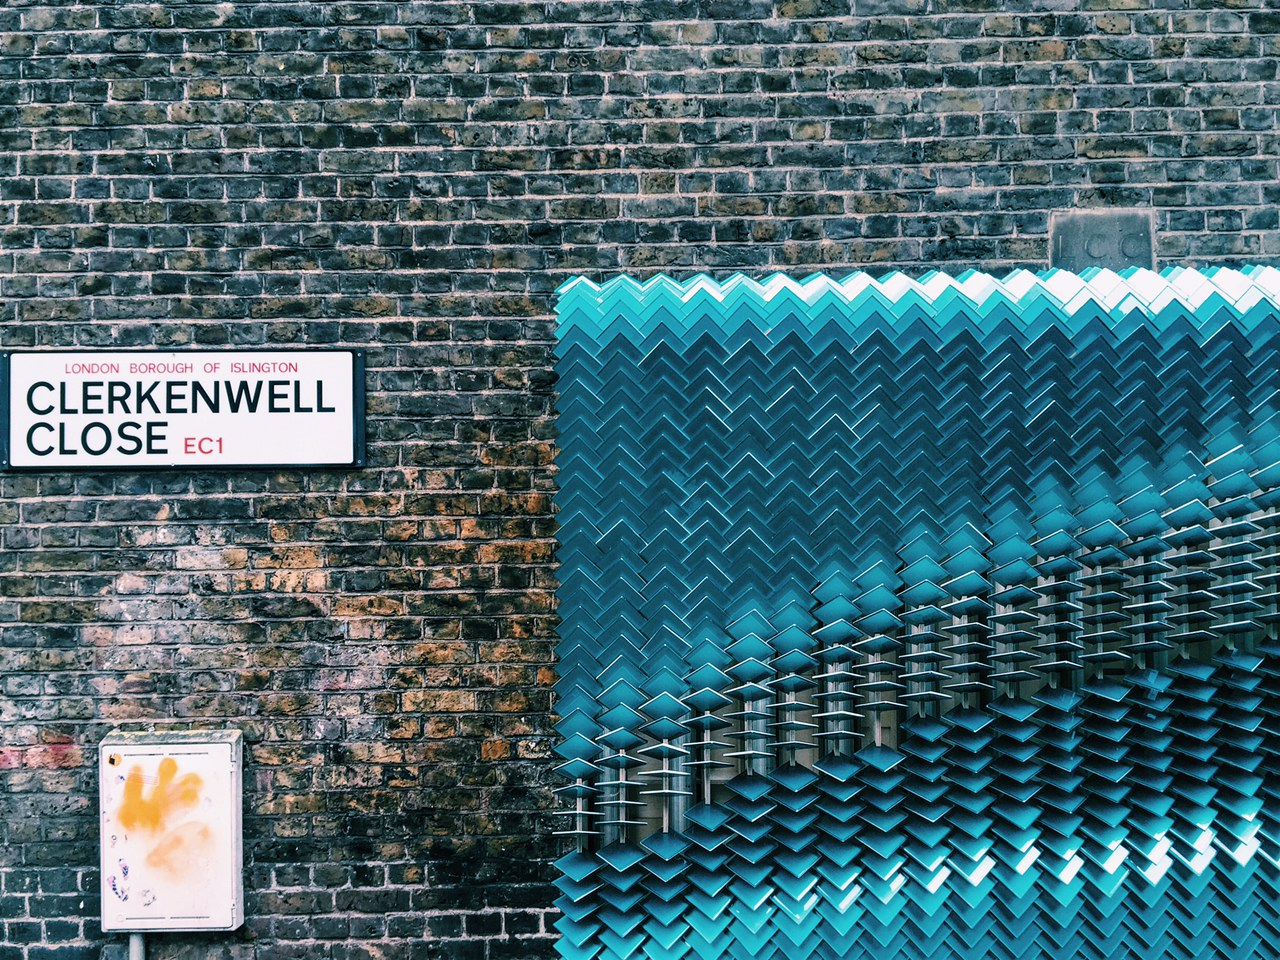 giles-miller-billboards-clerkenwell-02